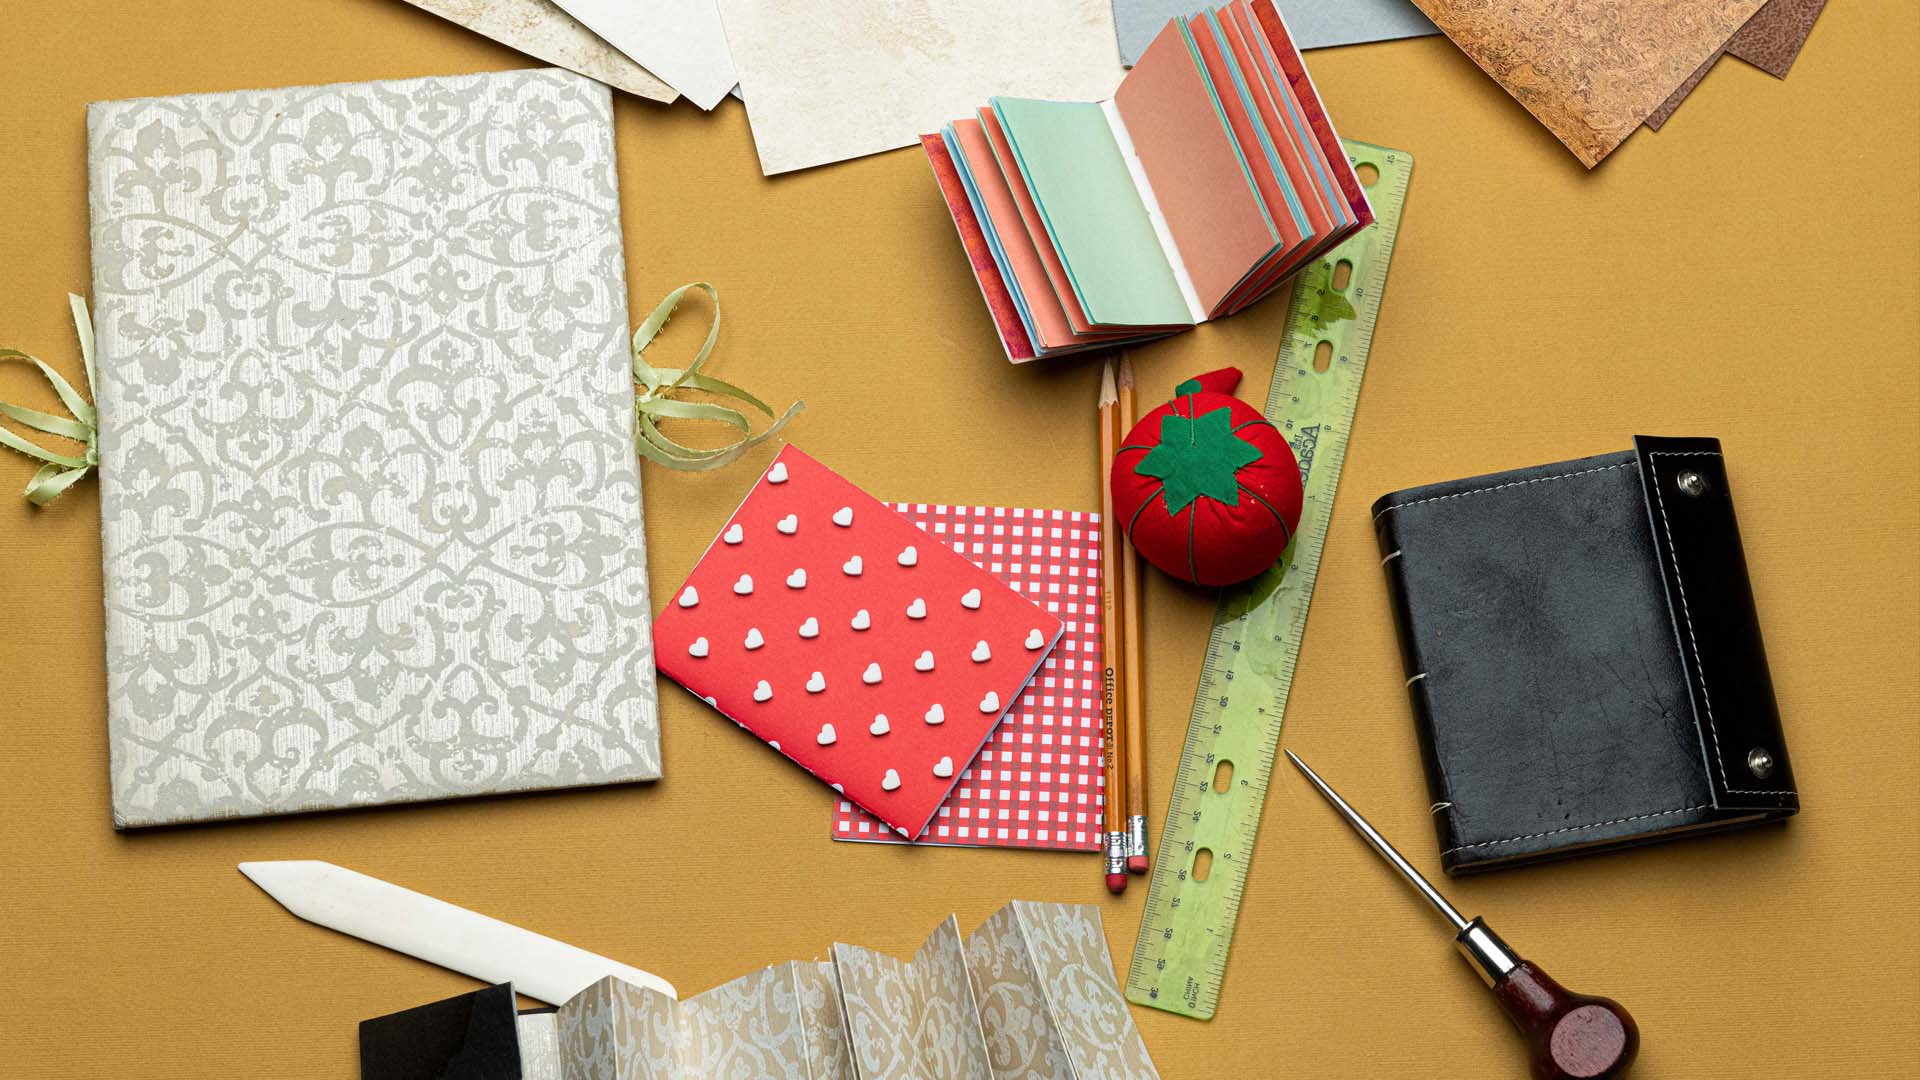 Tools and materials for a bookmaking activity, including colorful paper, a ruler, an awl, pencils, a bone burnishing tool, and finished handmade booklets